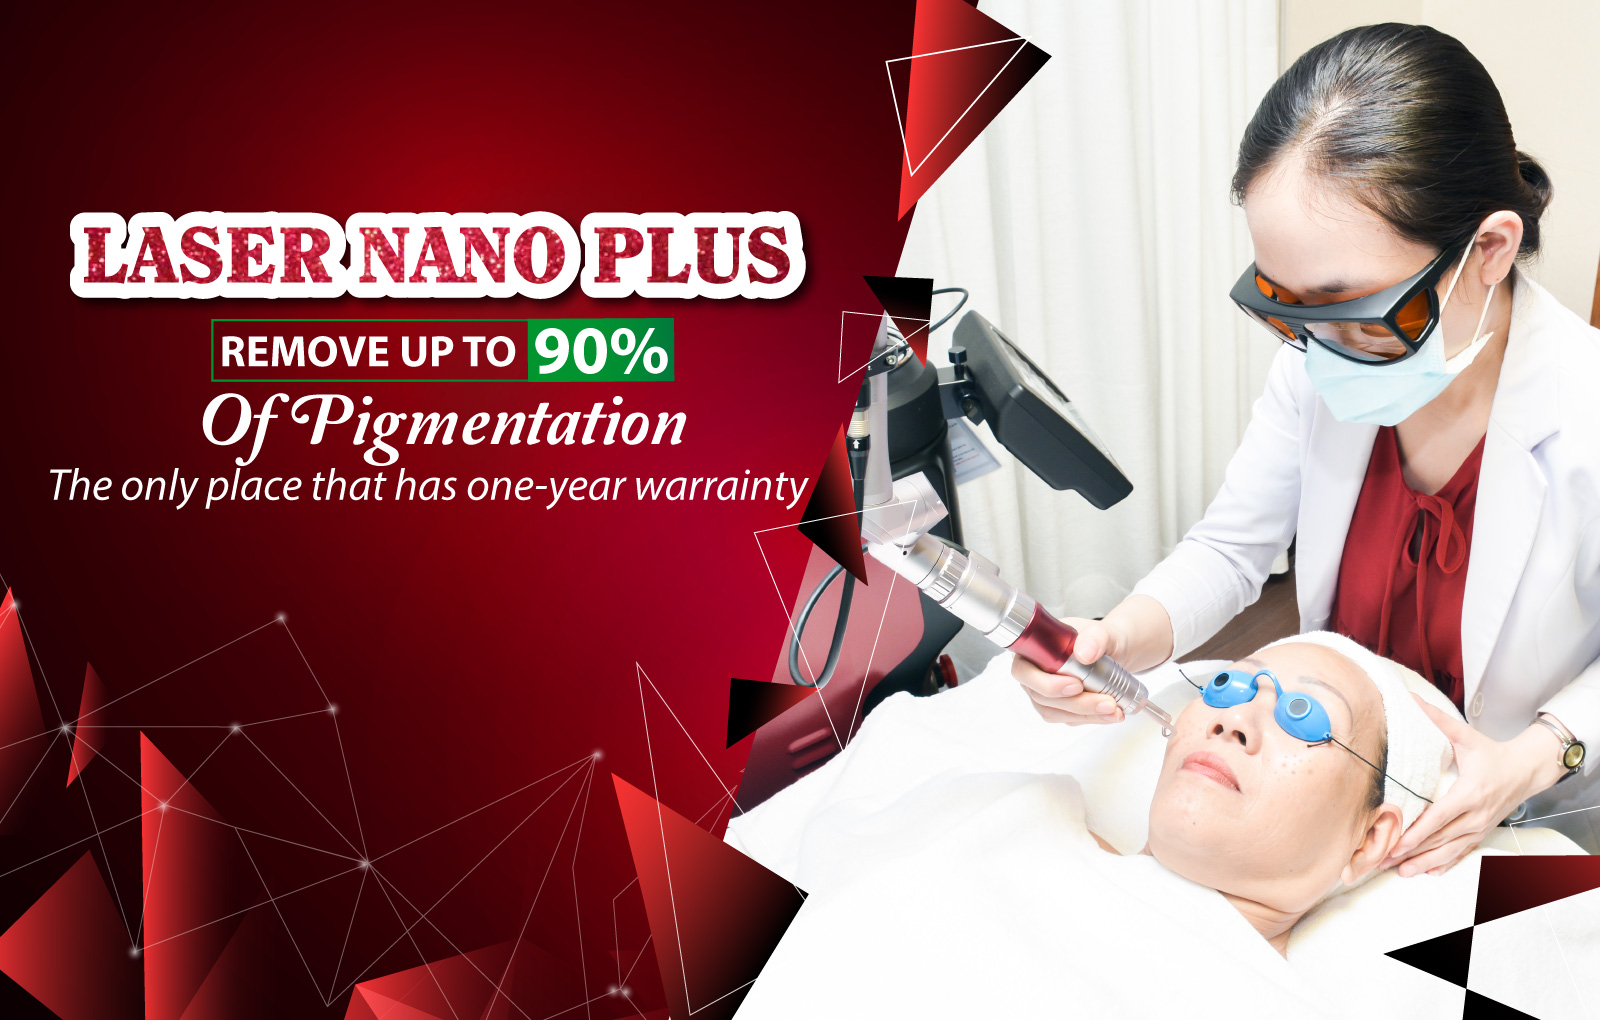 MELASMA TREATMENT - SKIN REJUVENATION - TATTOO REMOVAL BY LASER NANO PLUS TECHNOLOGY